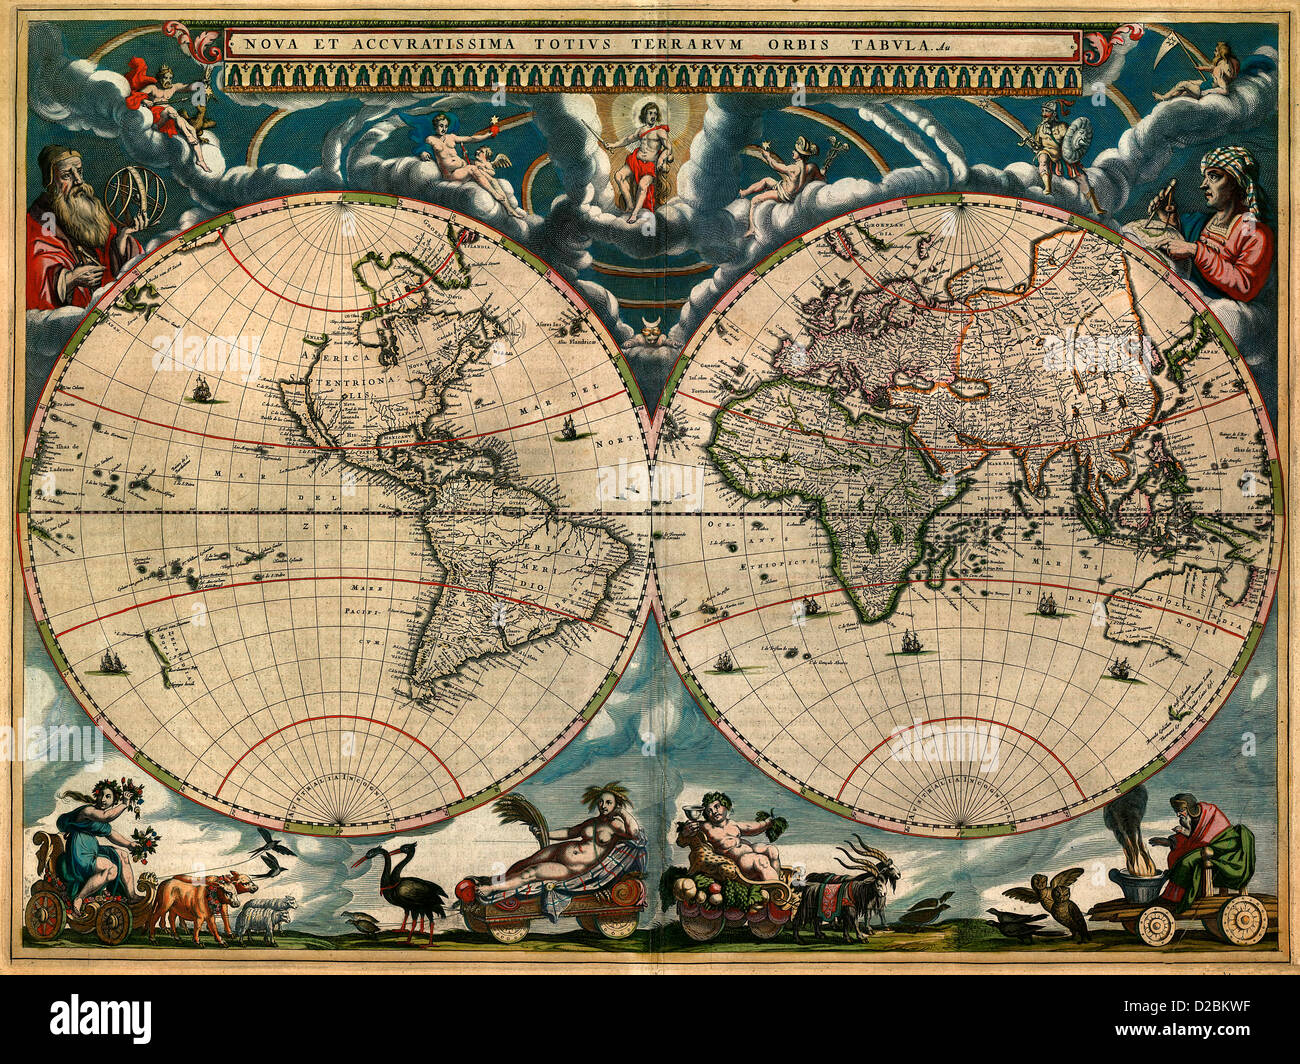 Accurate World Map Stockfotos & Accurate World Map Bilder ...